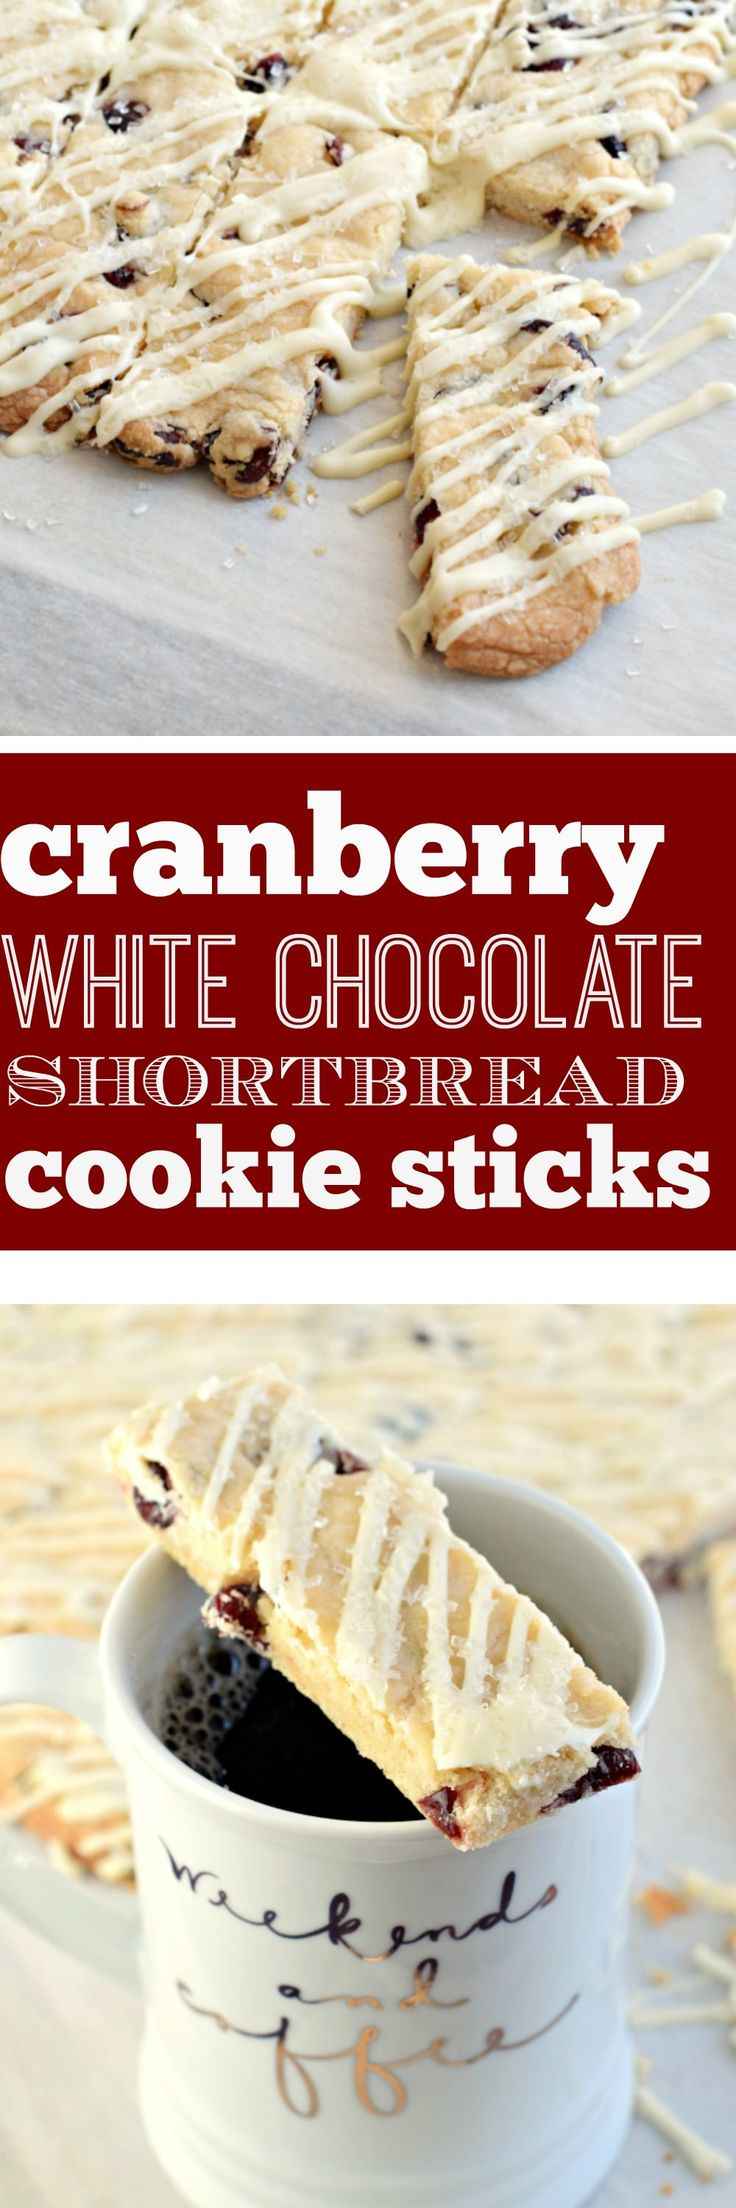 Get festive with these Cranberry White Chocolate Shortbread Cookie Sticks. Melt in your mouth delicious! You may need to double the recipe, these go fast!